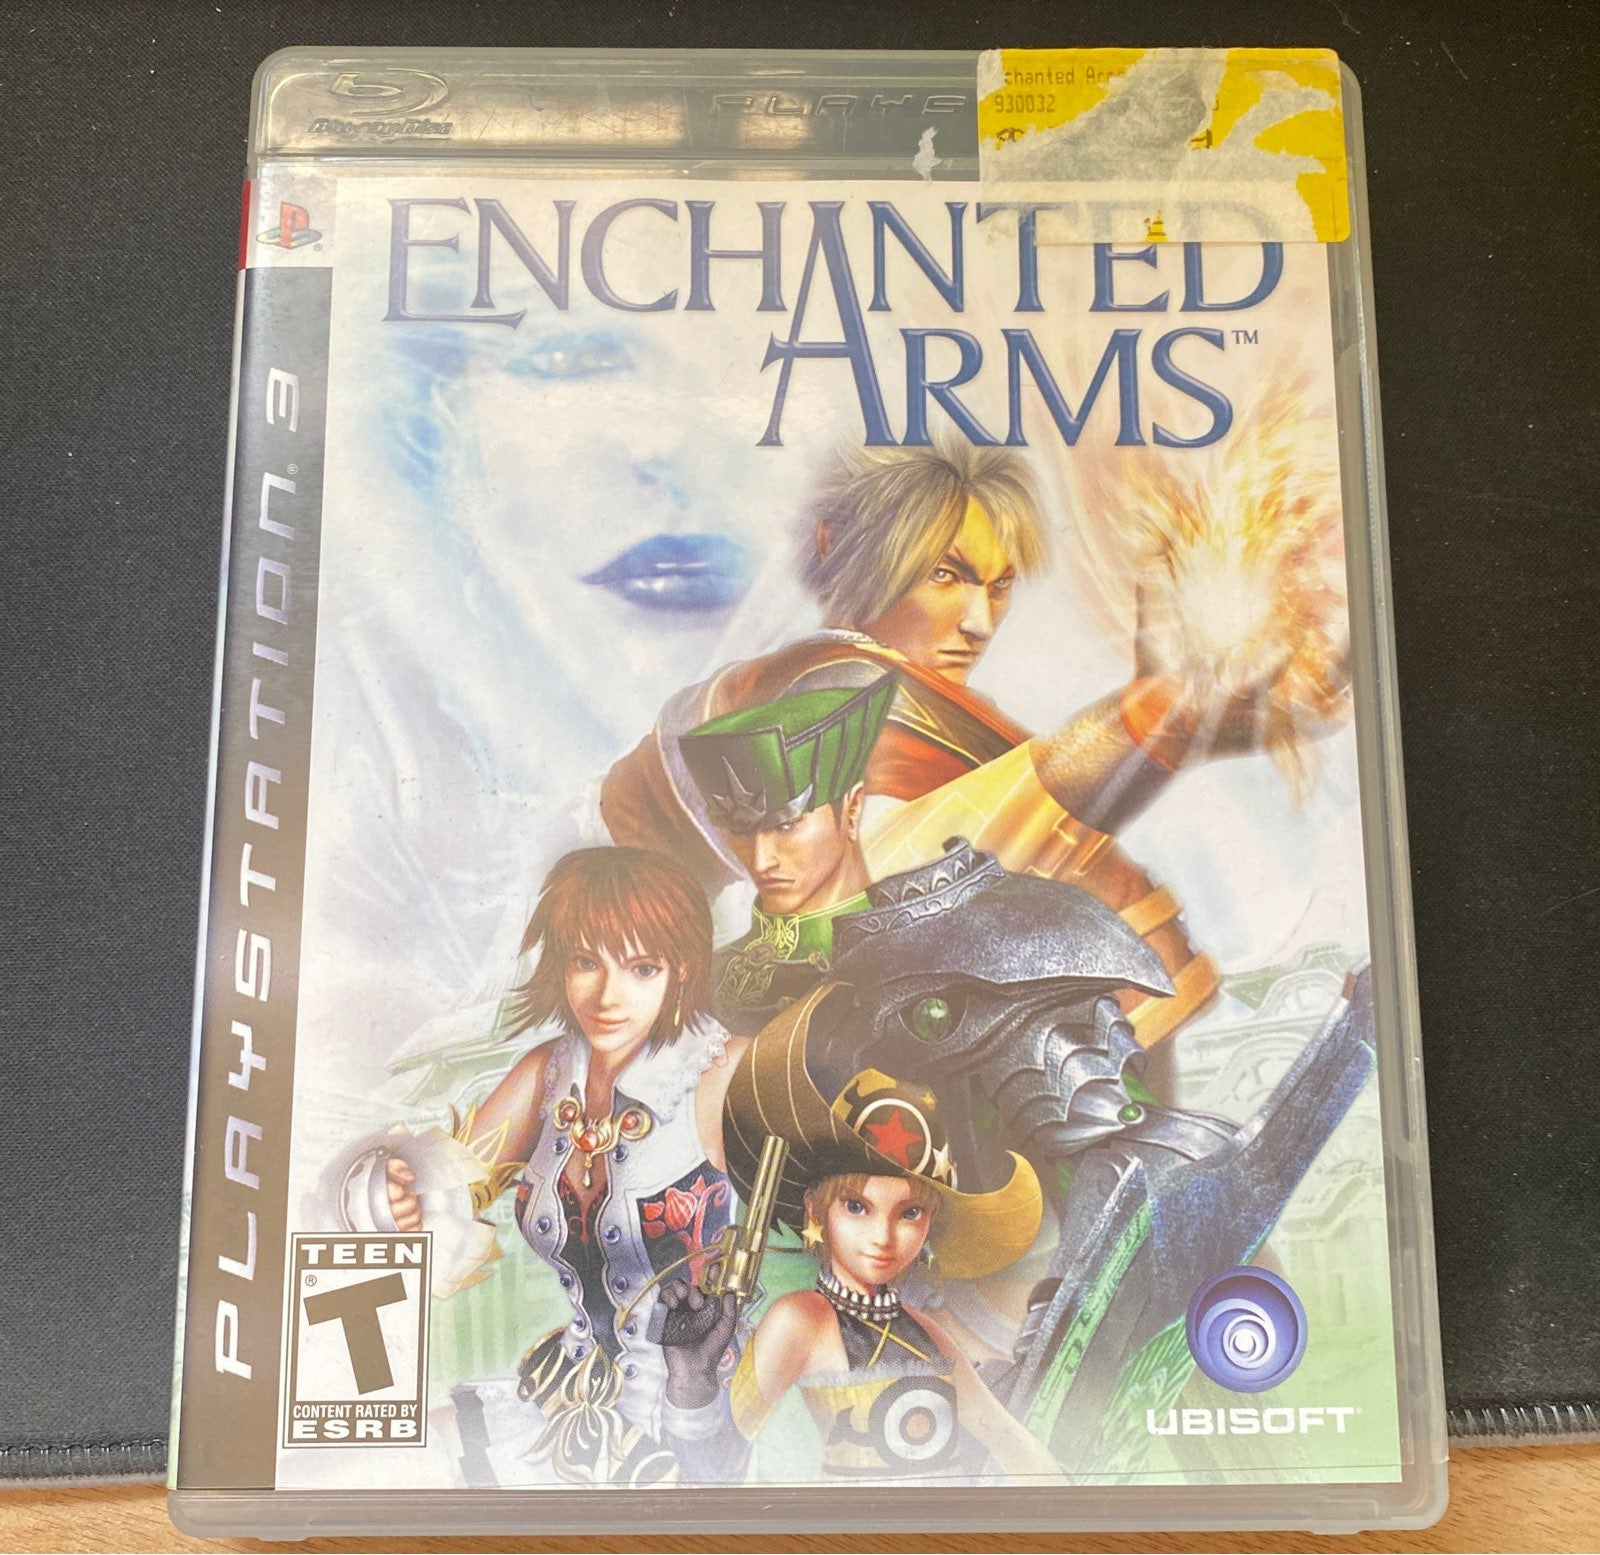 Enchanted Arms on Playstation 3